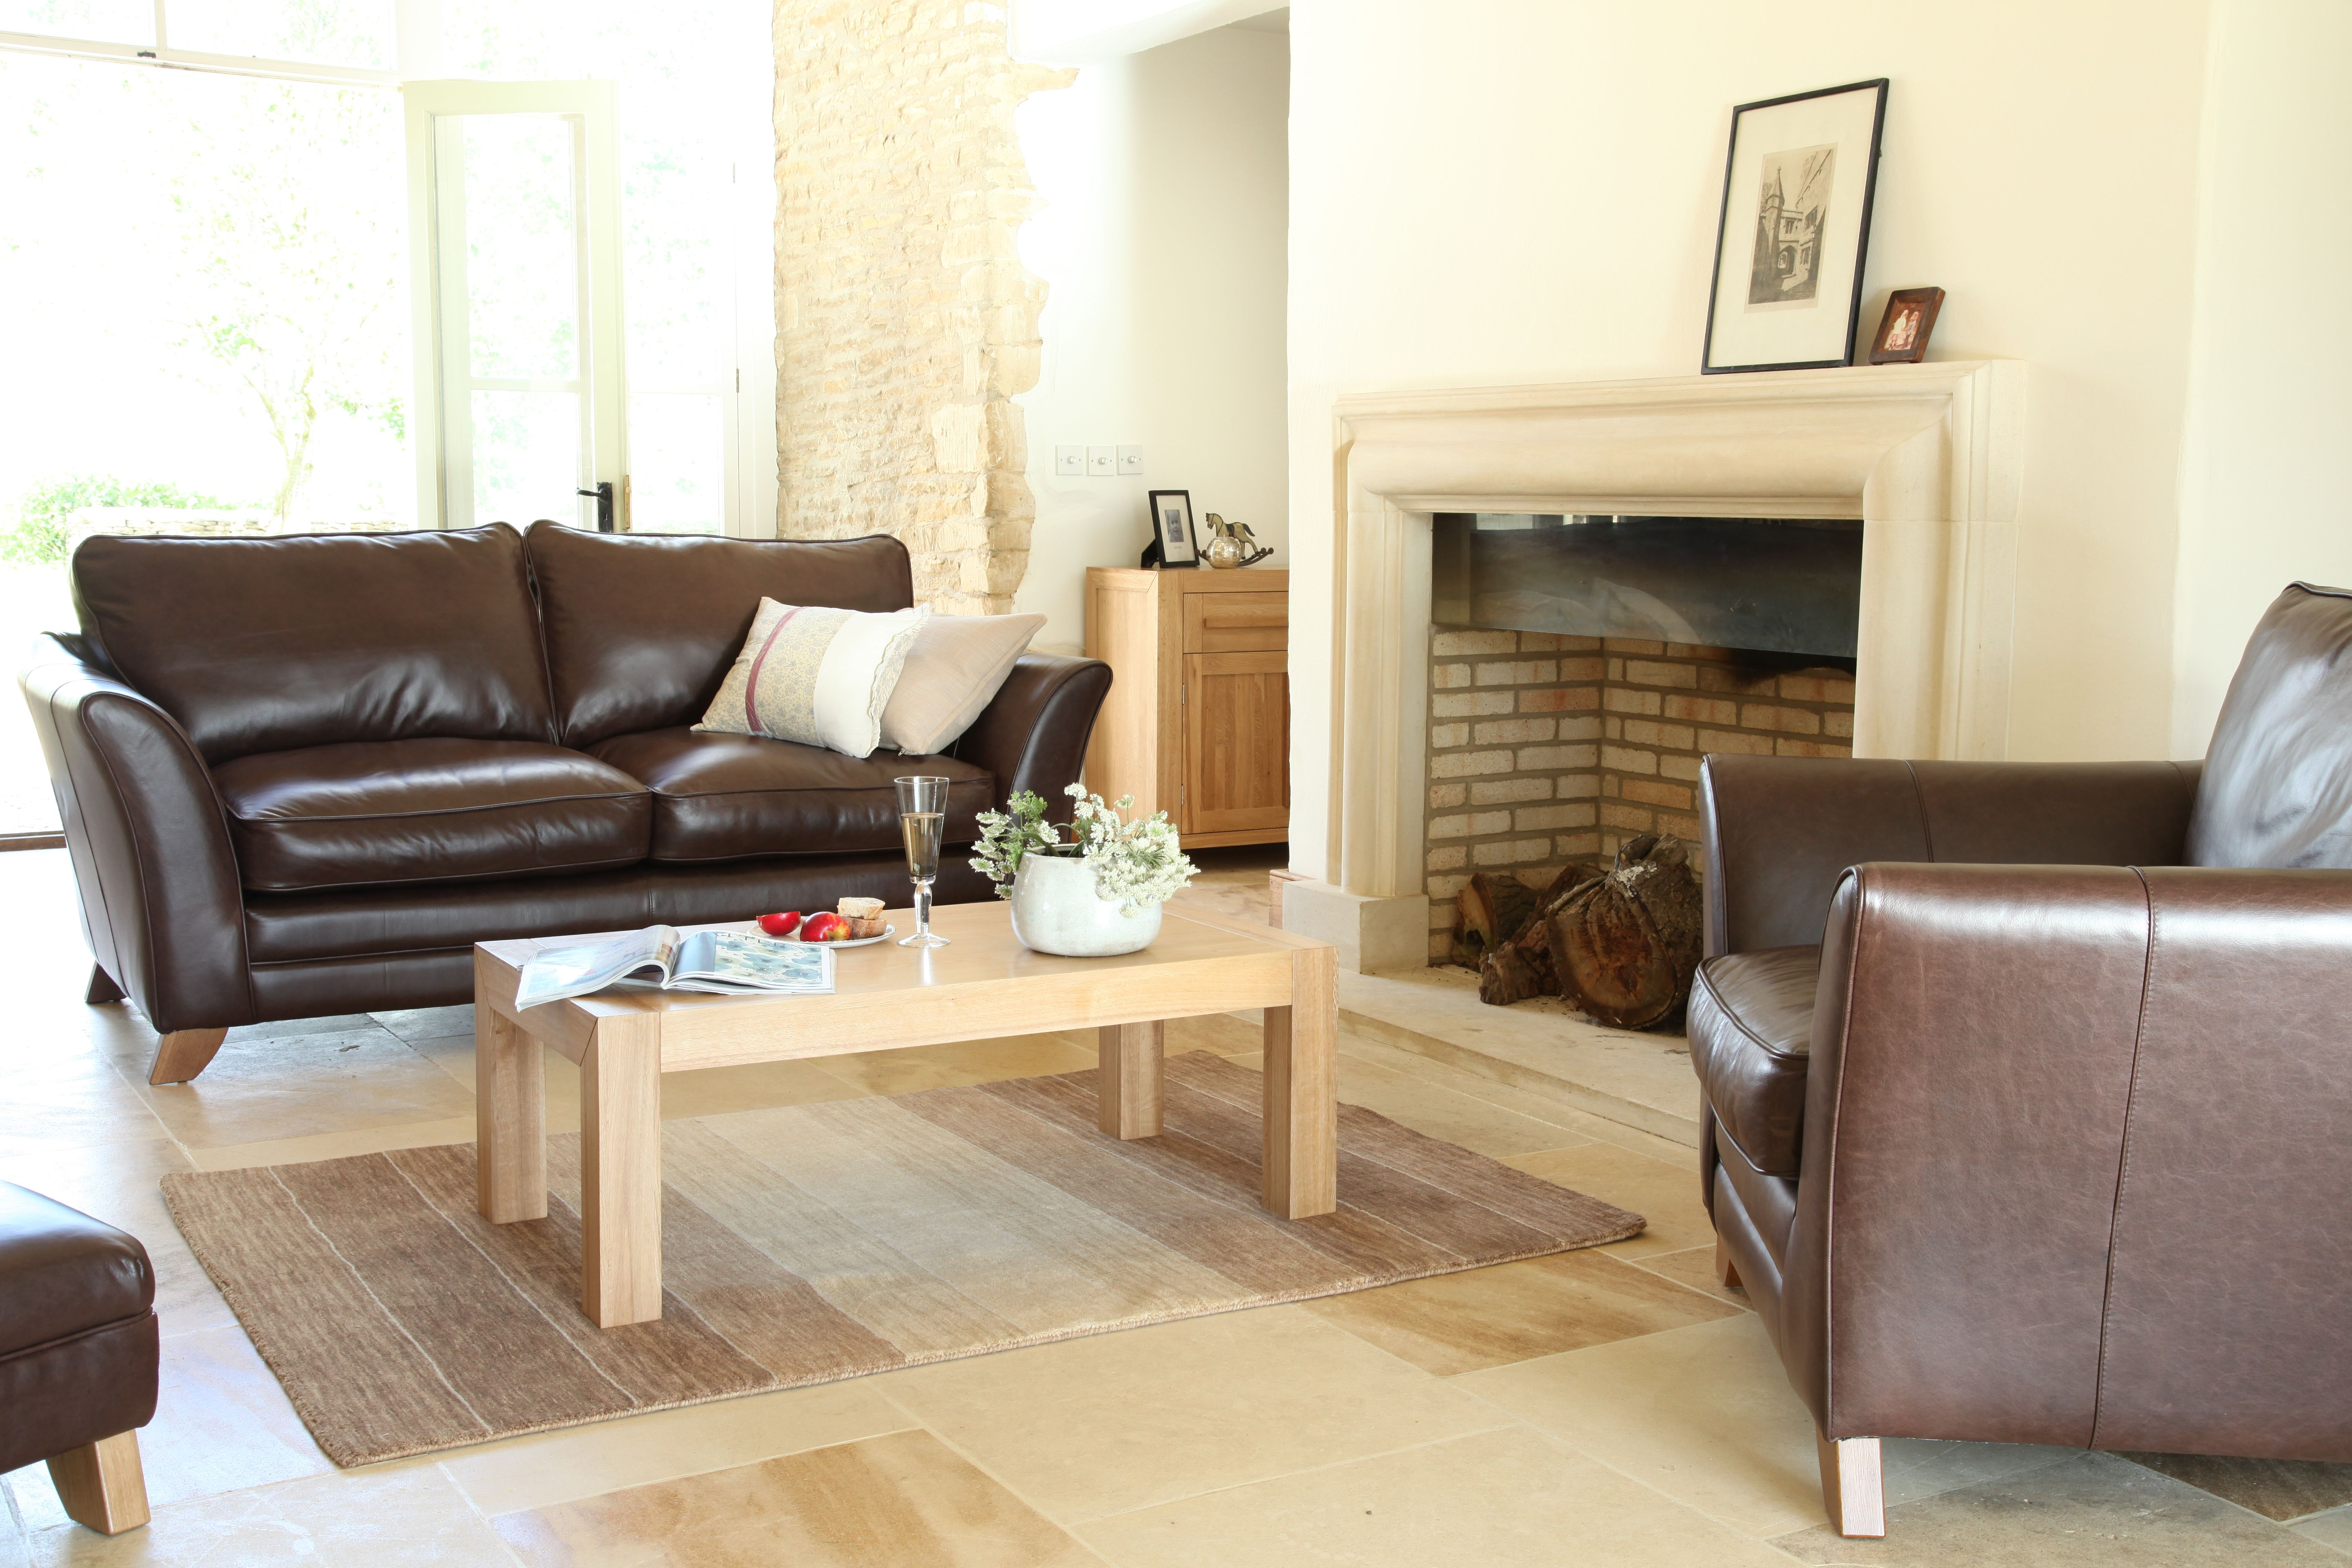 Quercus Solid Oak Furniture Range Living Room Furniture Collection ...